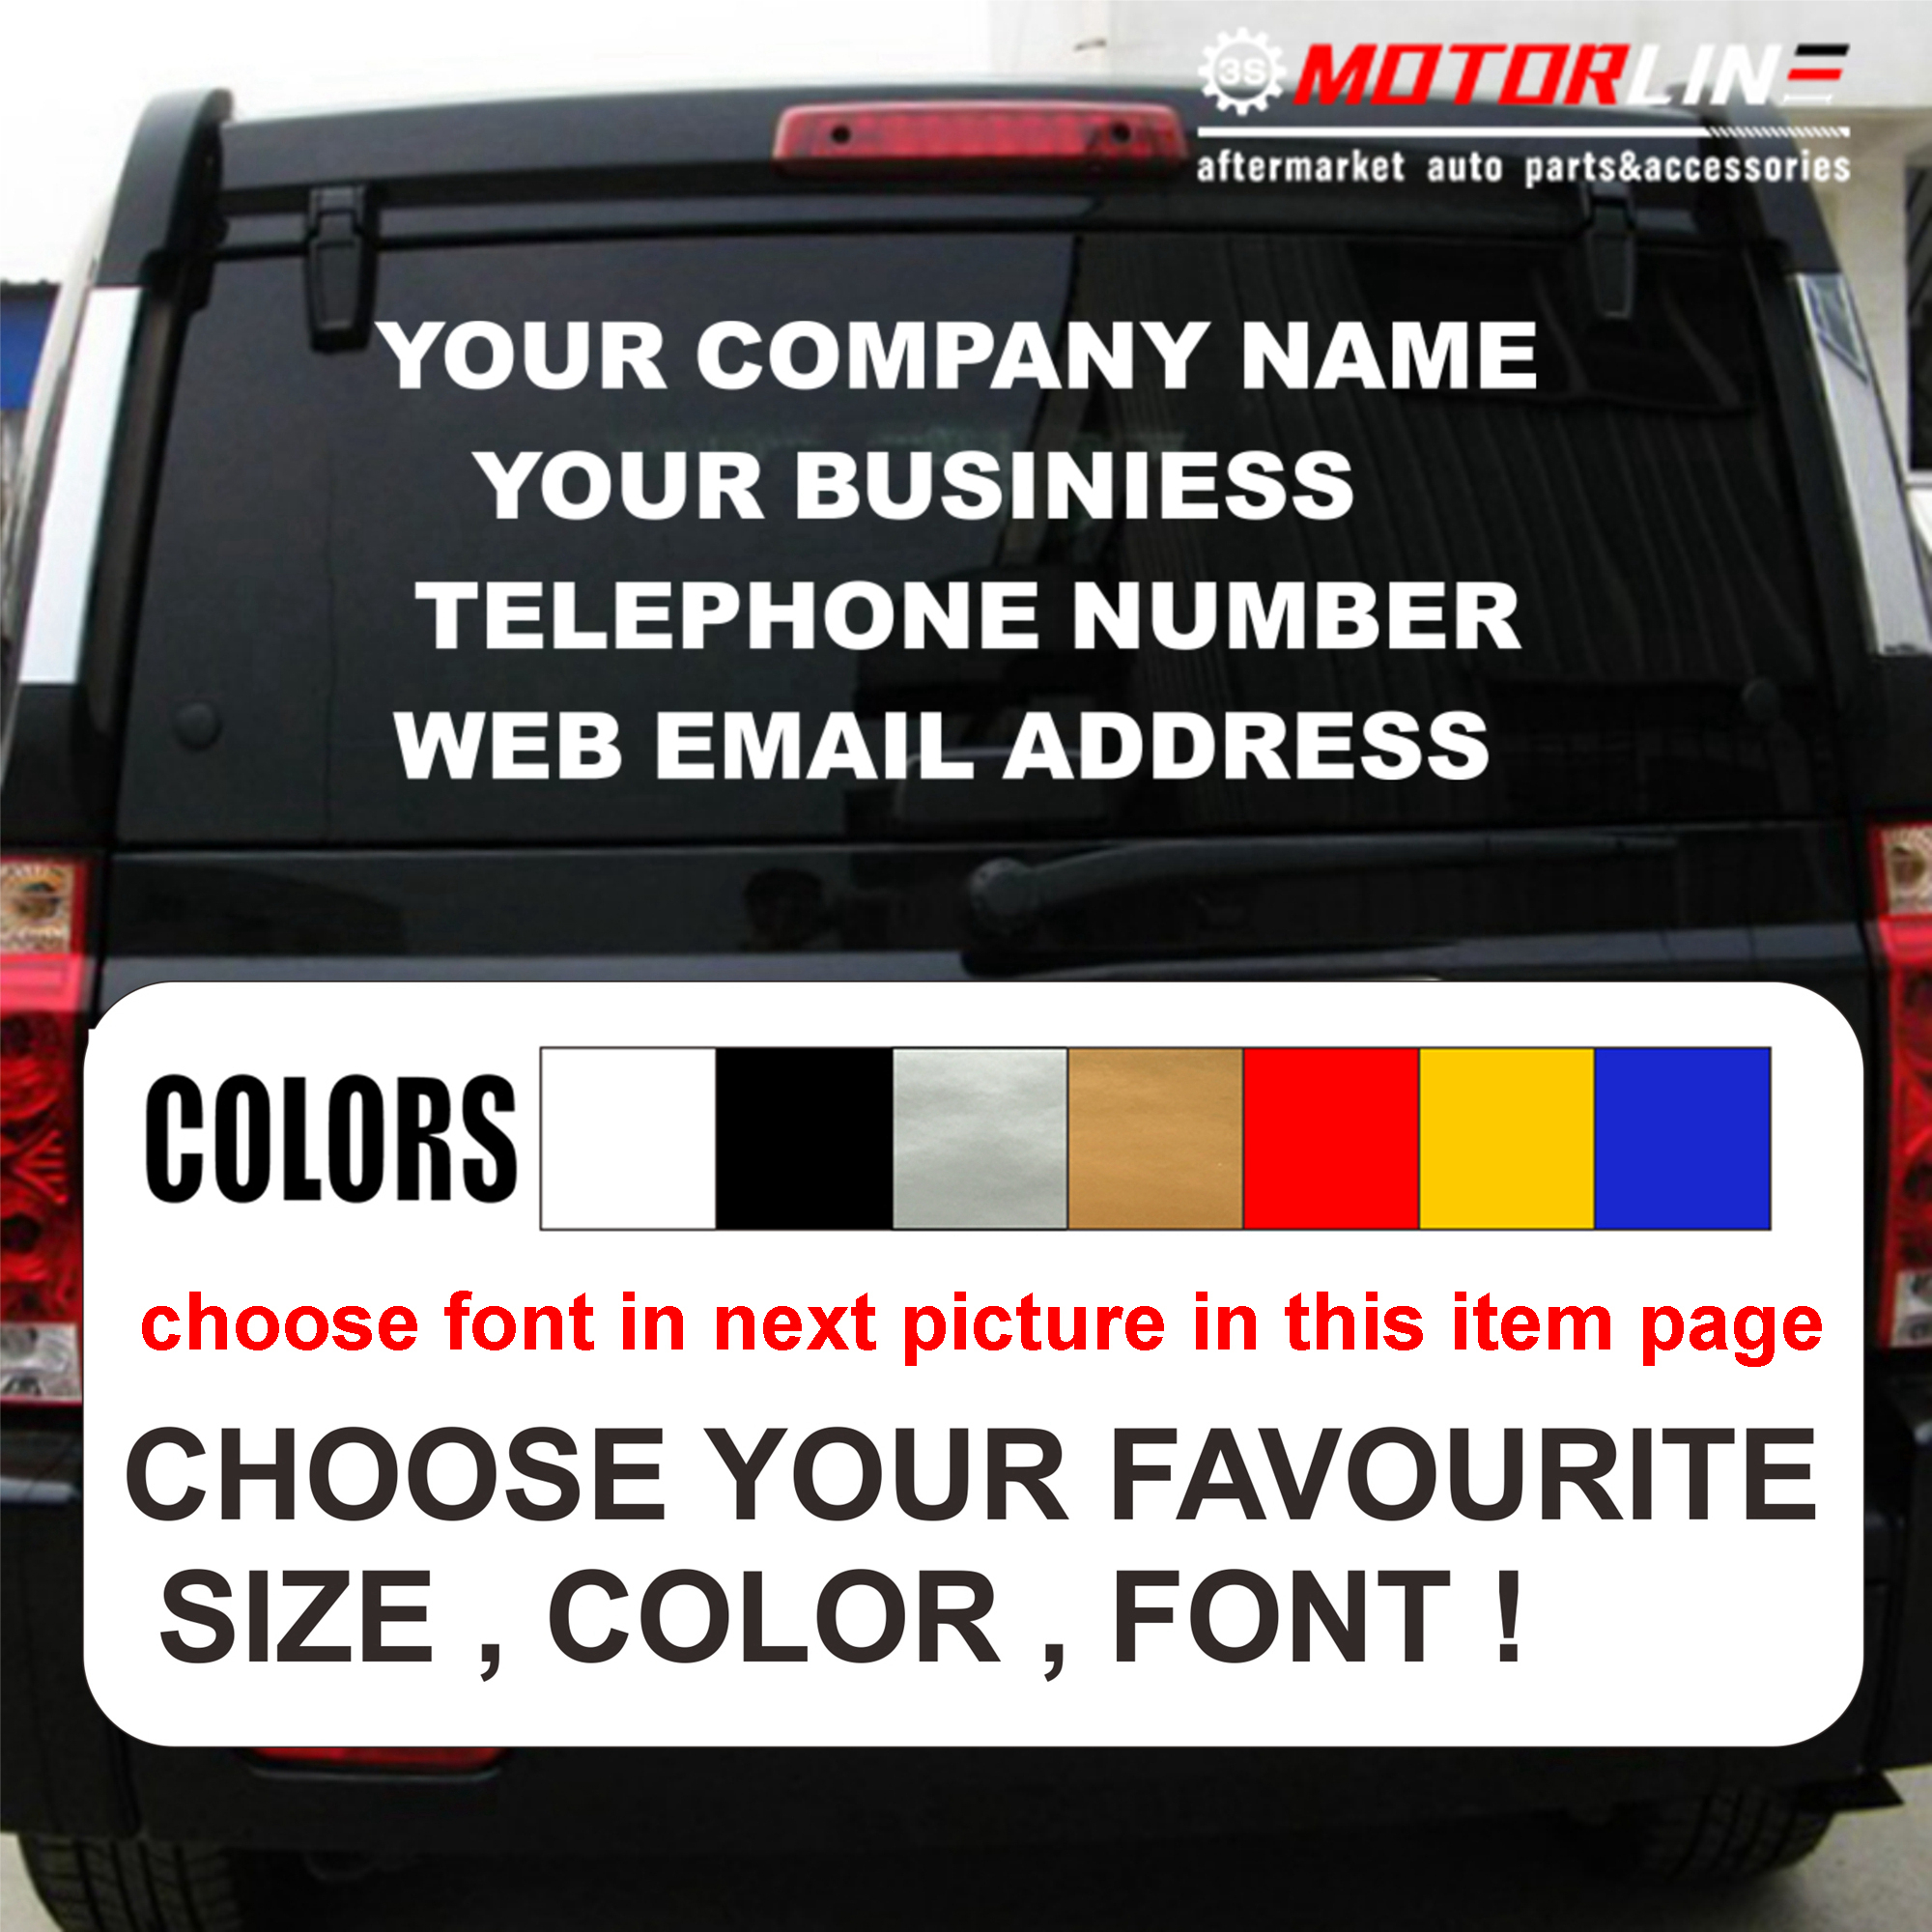 Personalised custom your text business name tele number phone website decal sticker car vinyl pick size color